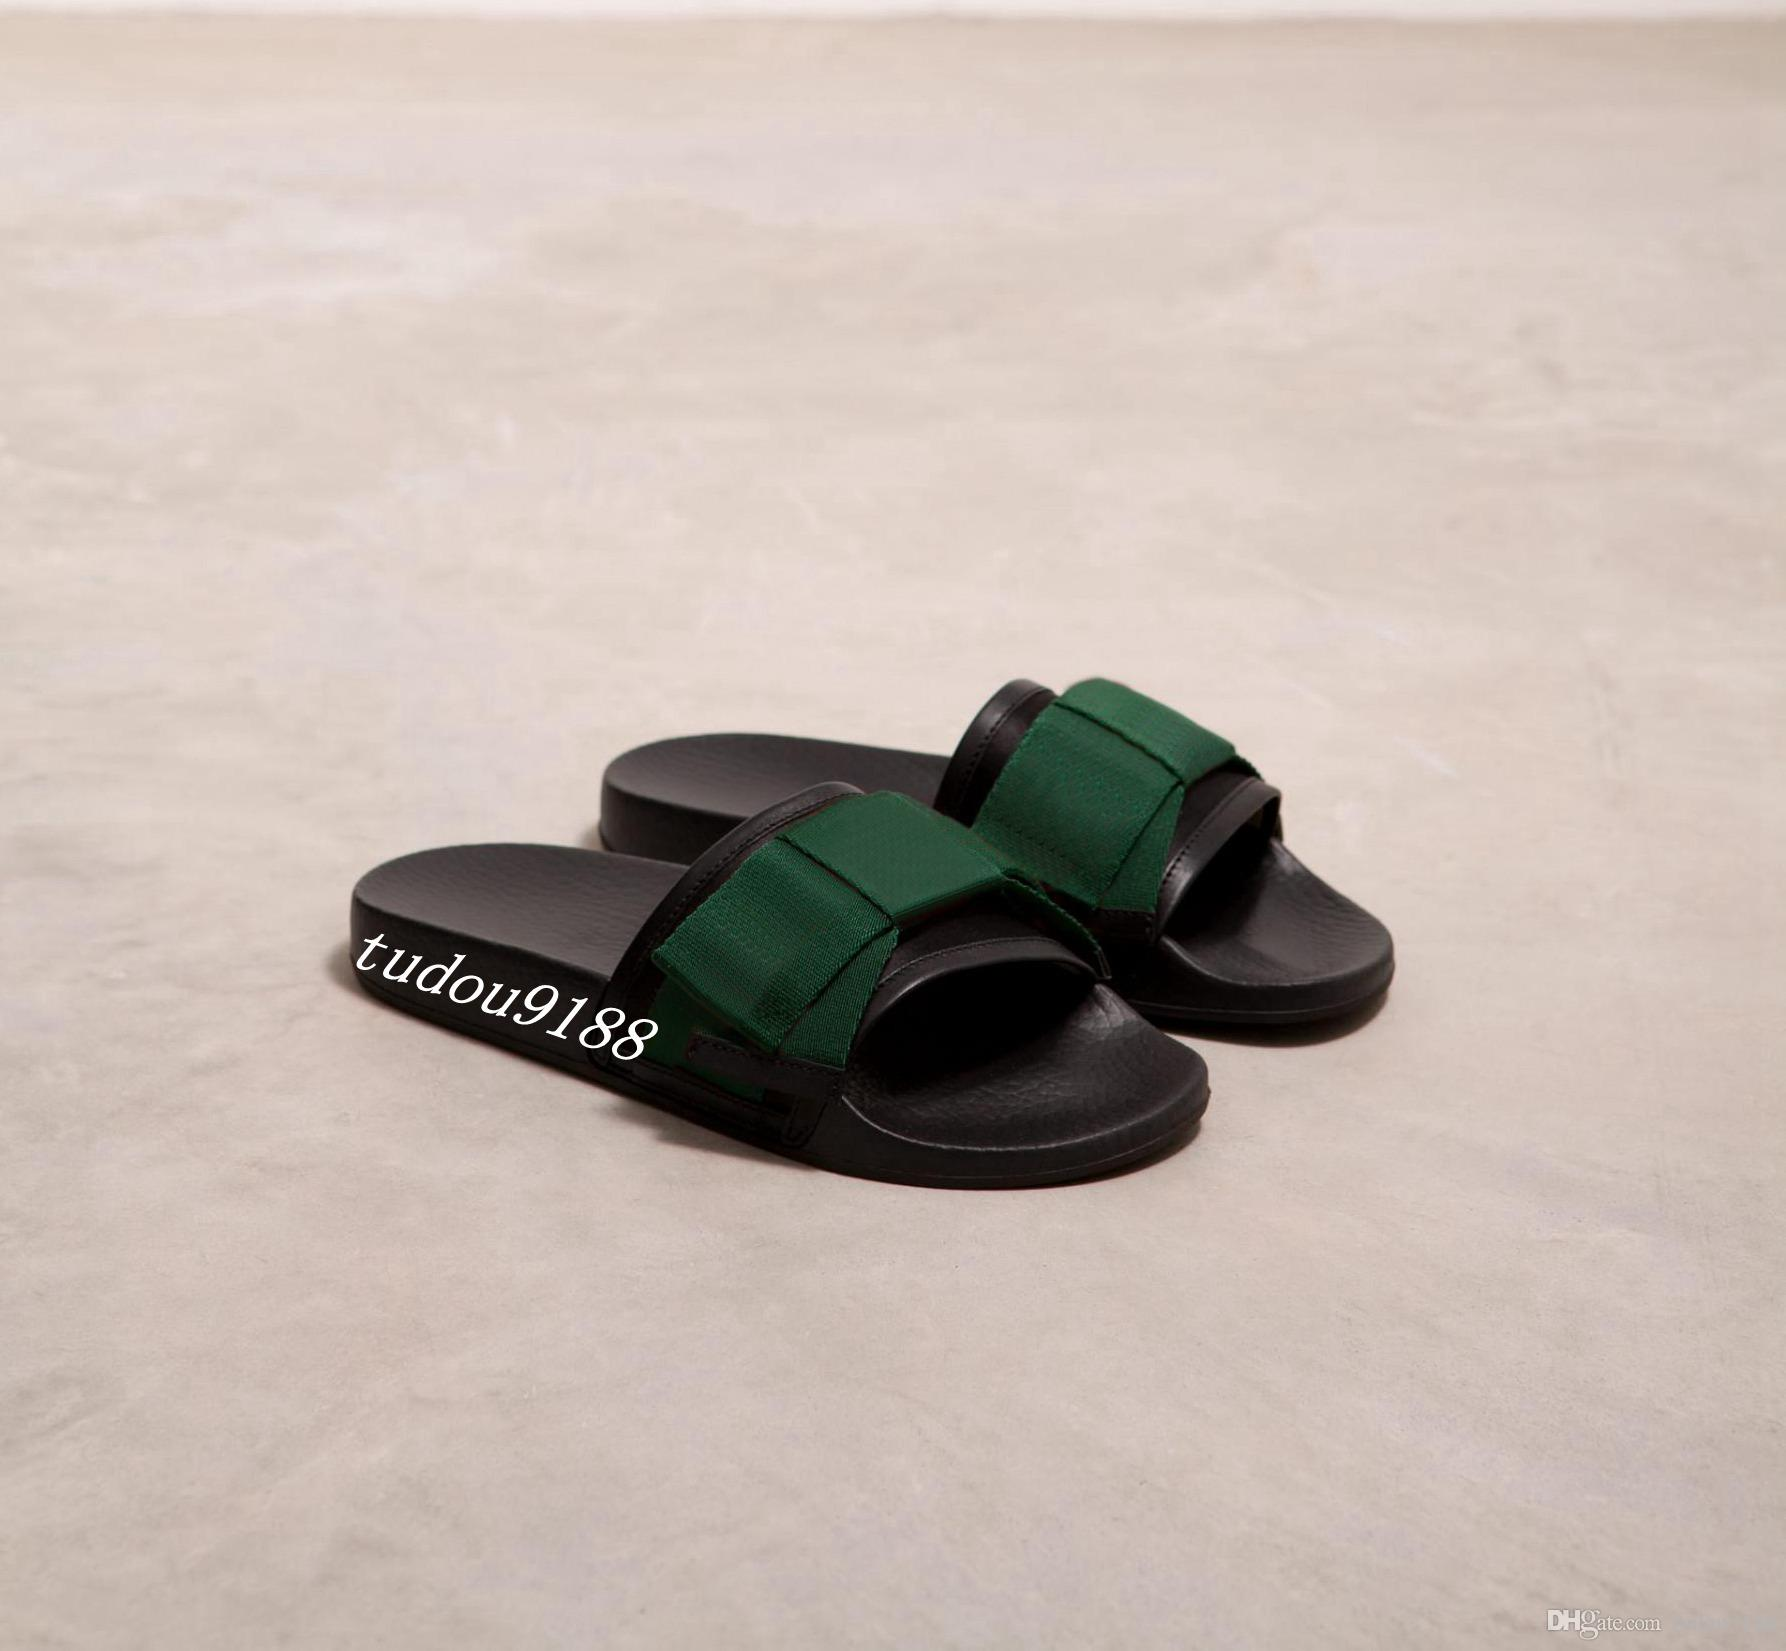 88a68858b9090 New Arrival Mens And Womens Fashion Satin Bow Slides Sandals ...